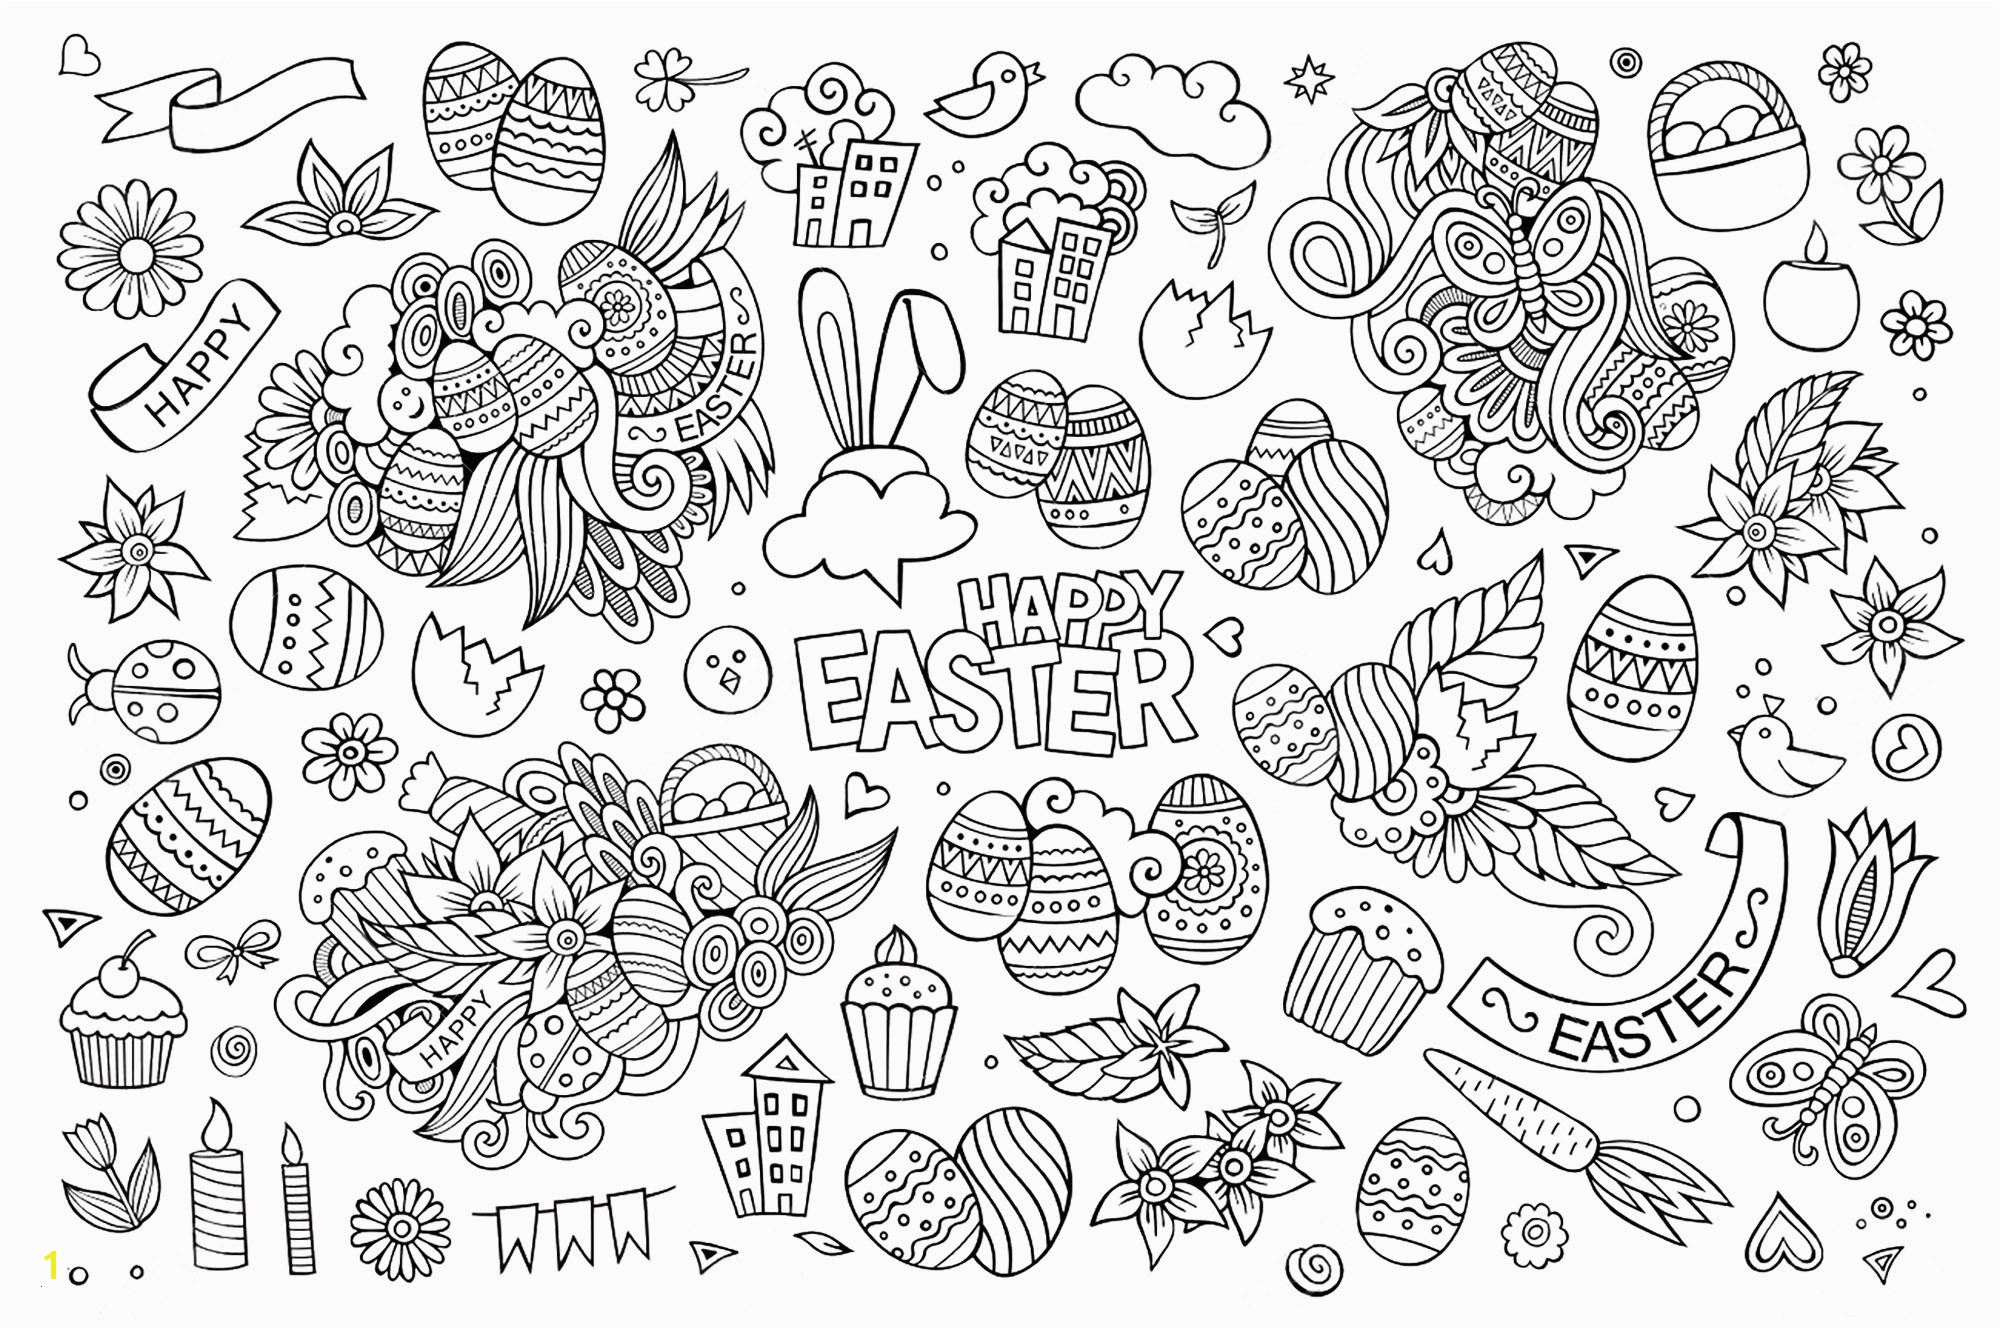 Christian Easter Coloring Pages First Class Religious Easter Coloring Pages For Adults Easter Coloring Pages